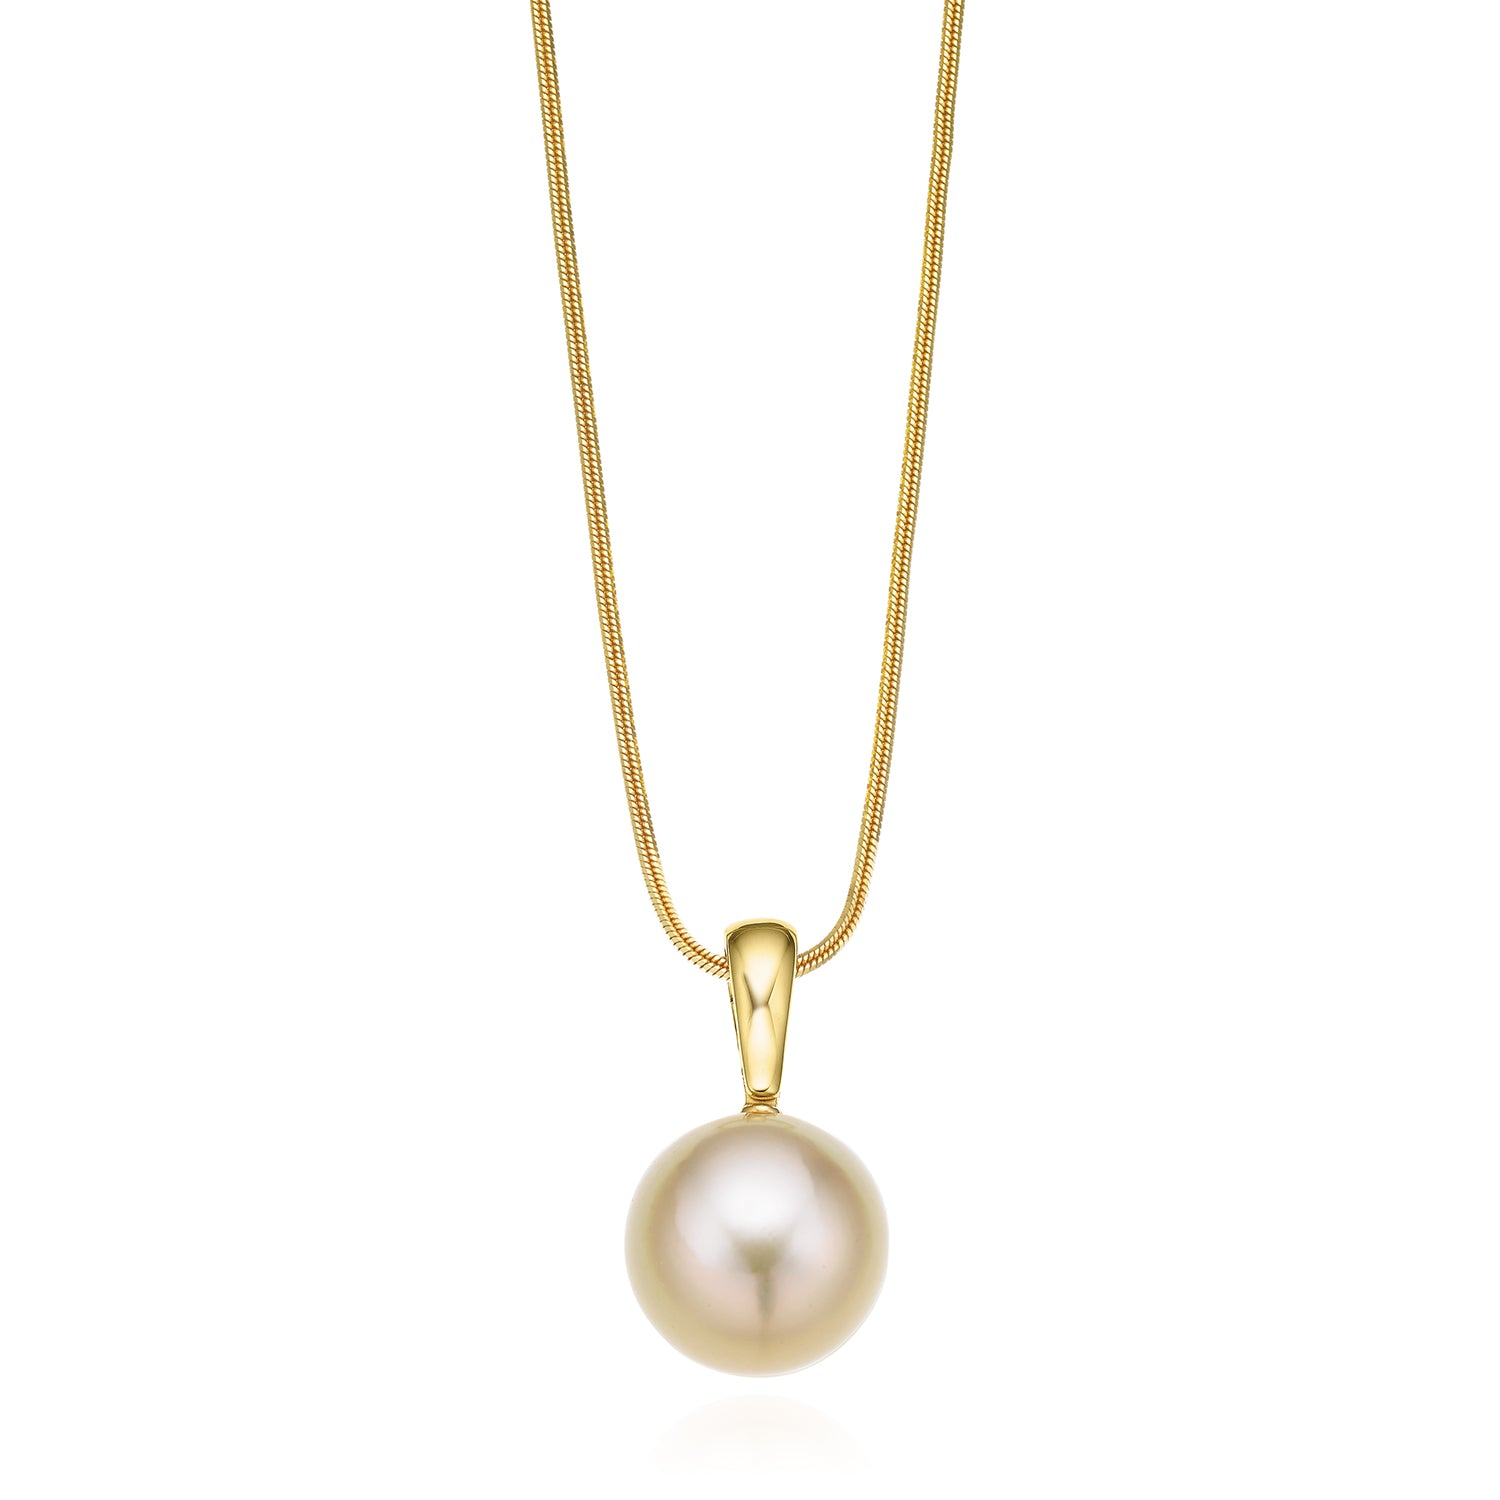 18ct Yellow Gold 12-13mm Gold South Sea Pearl